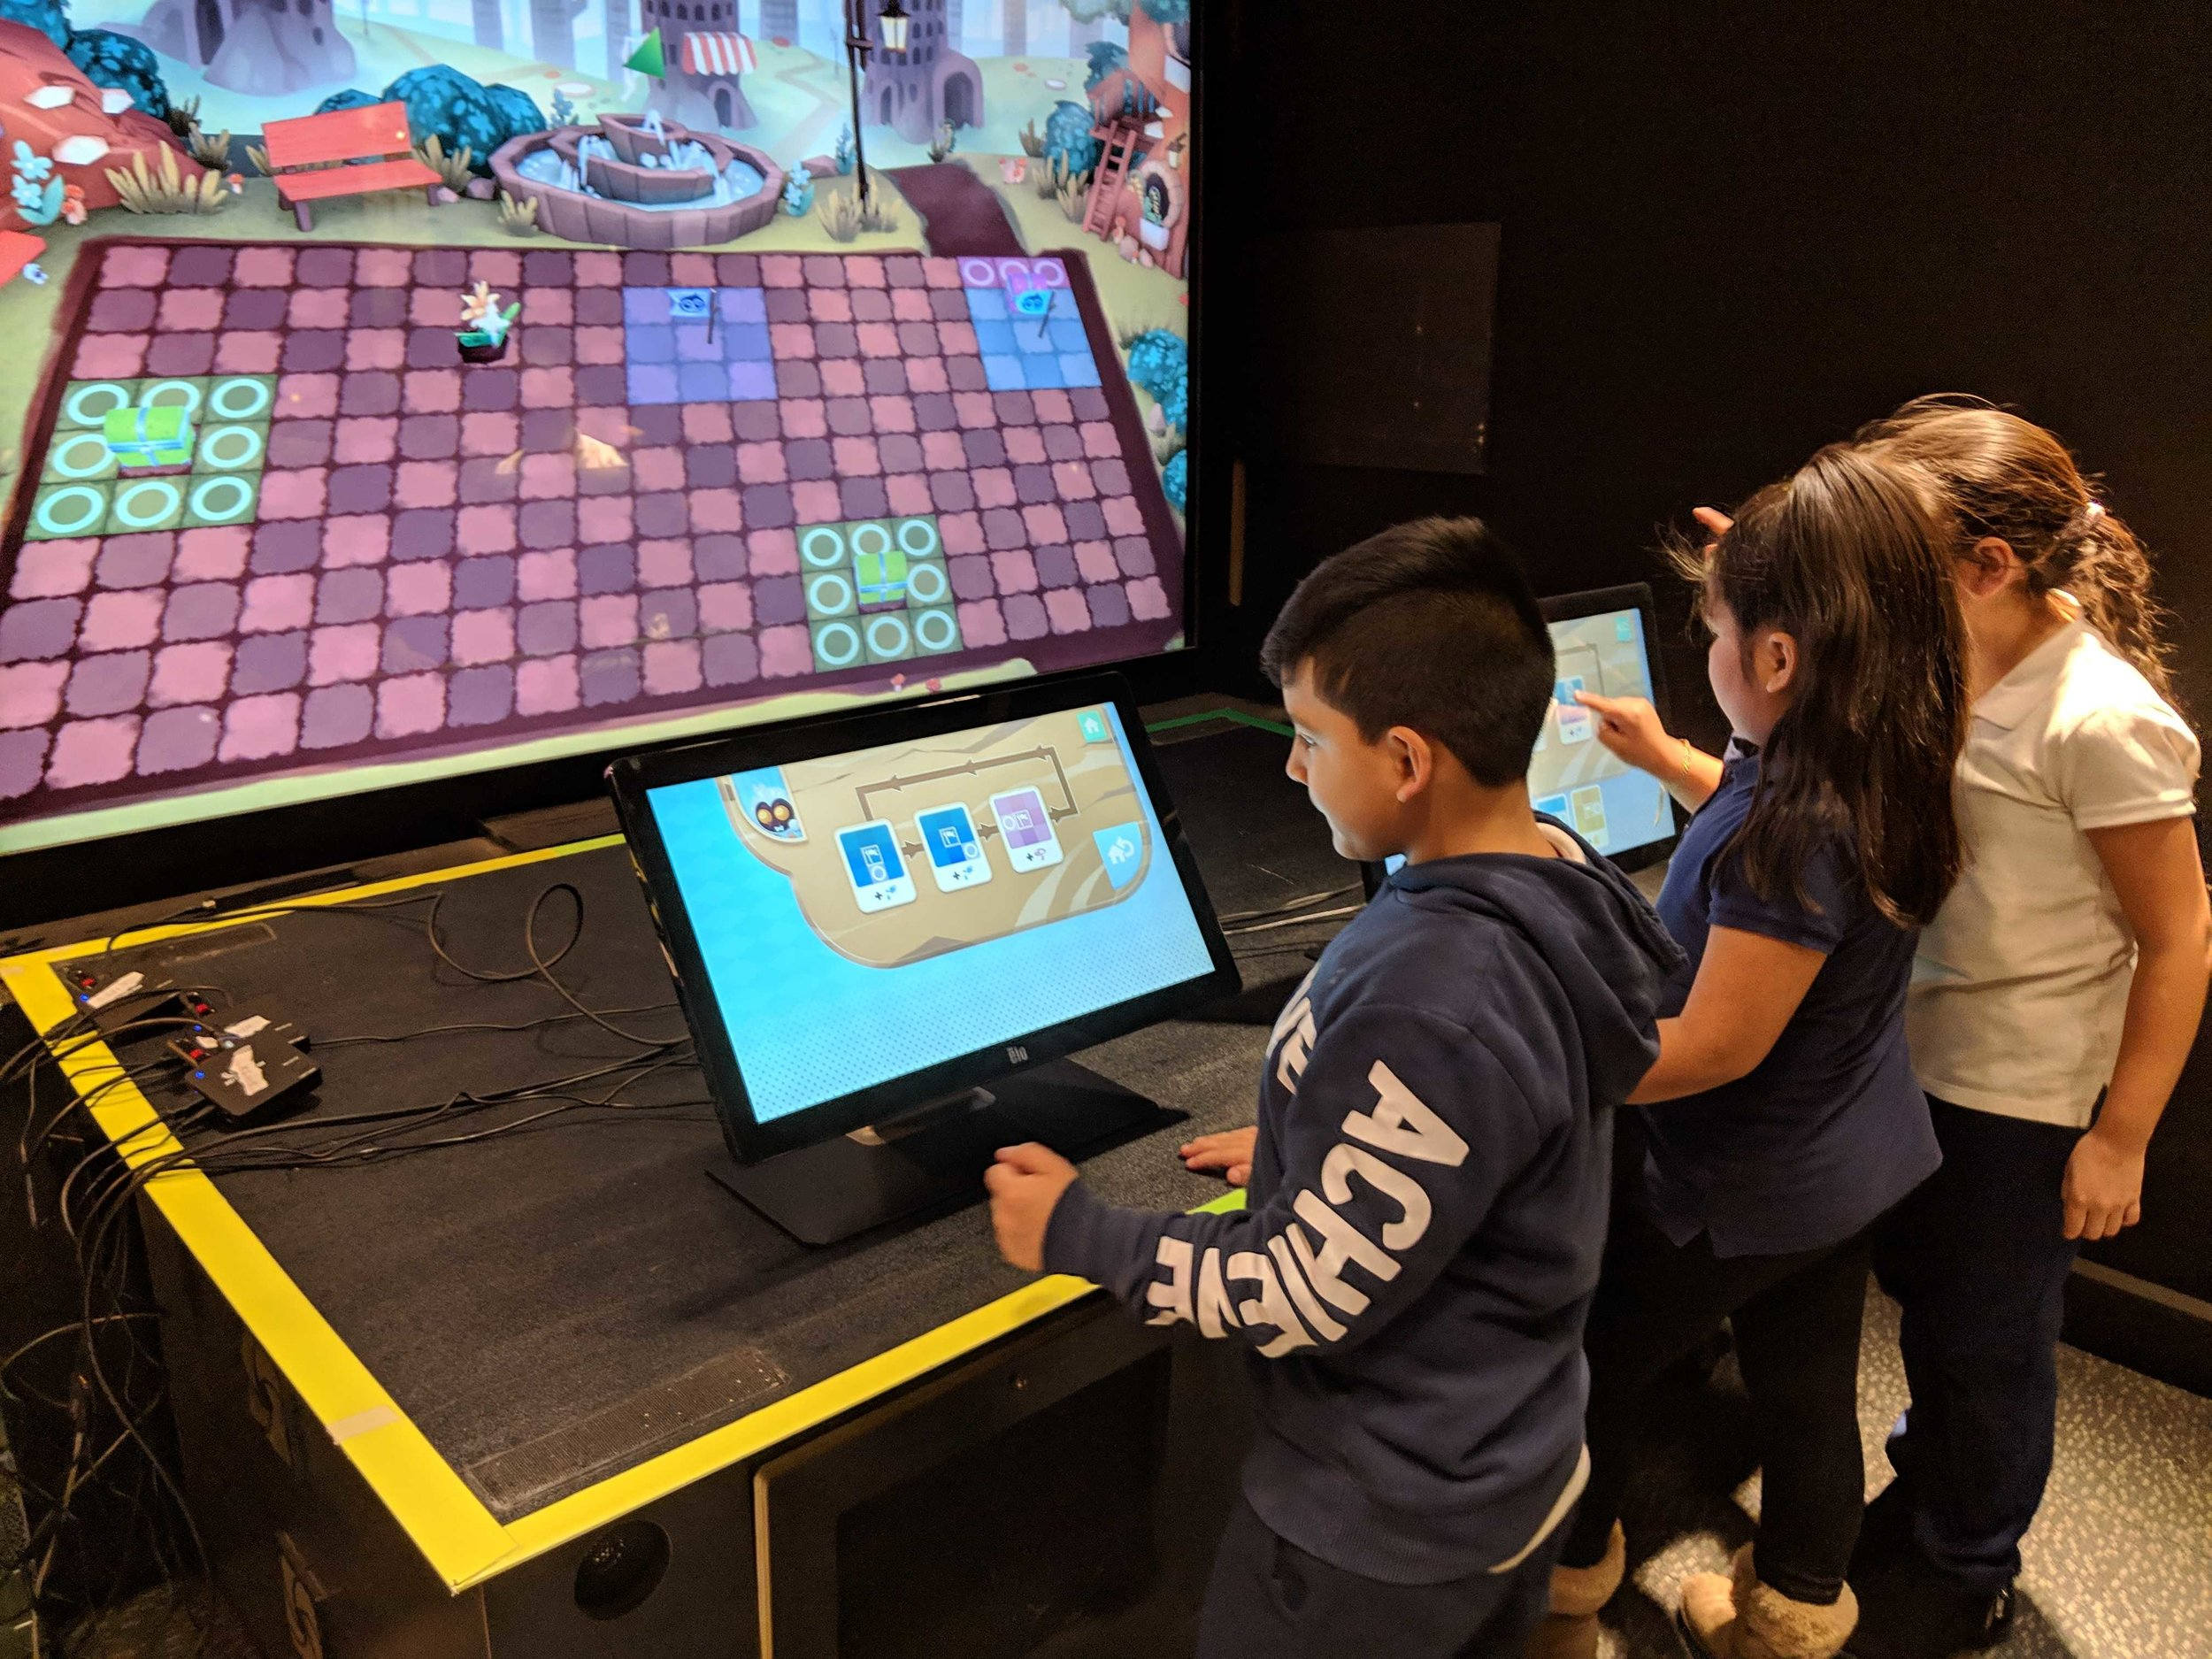 The game is currently exhibited at the New York Hall of Science and the Lawrence Hall of Science, where it is used to conduct research about promoting equity in computer science.